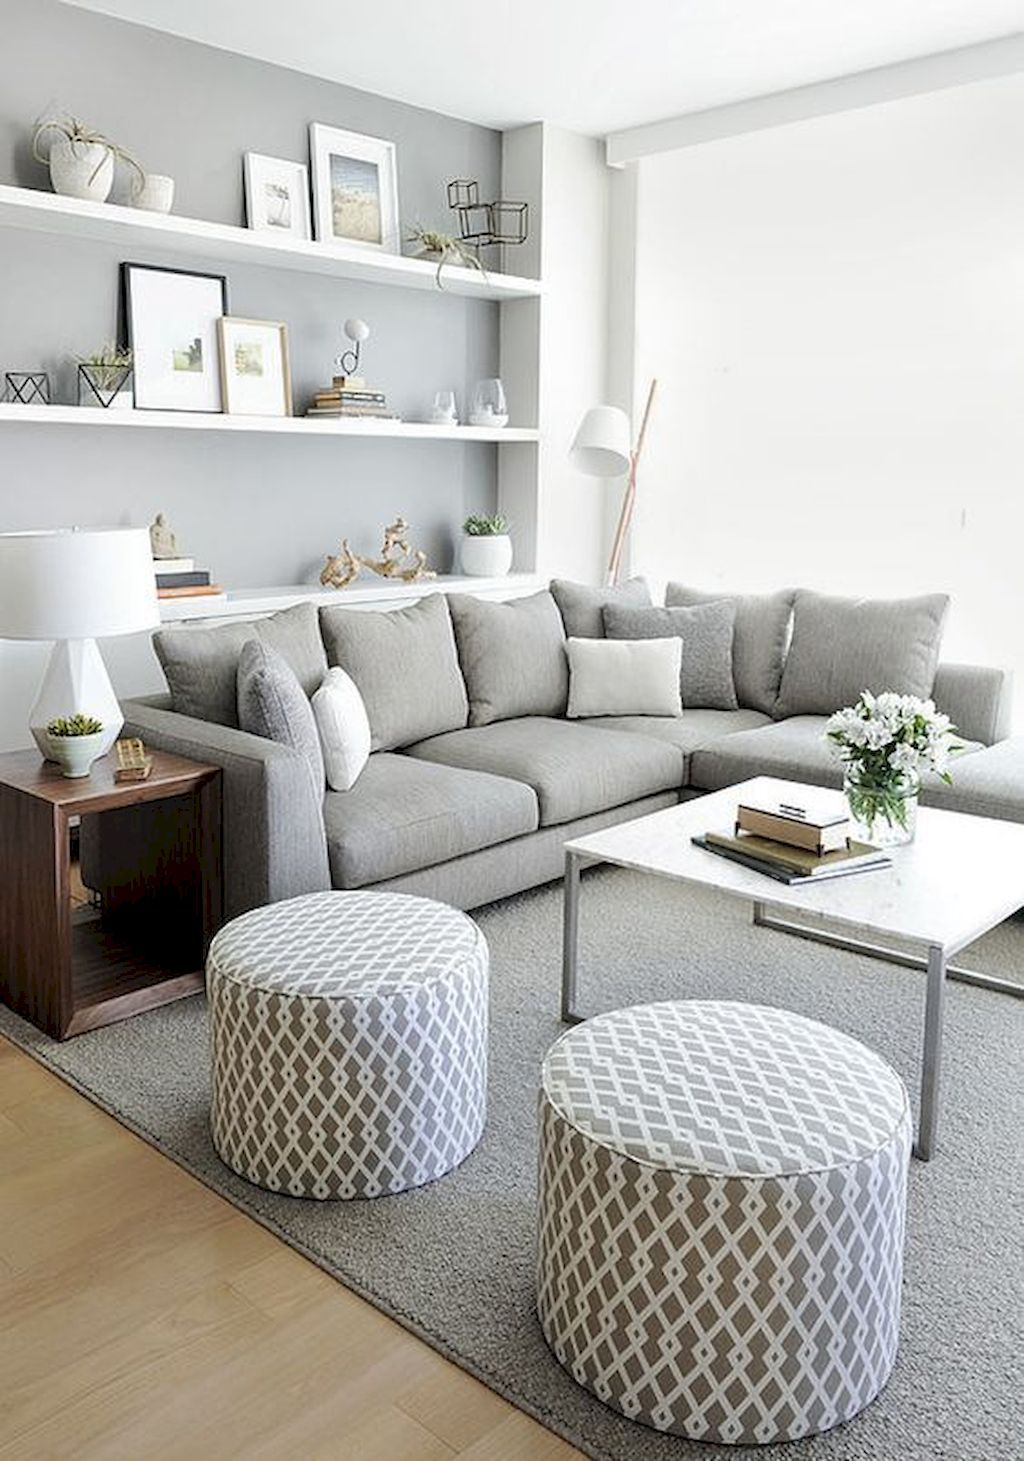 Gorgeous 85 Cozy Small Living Room Decor for Apartment Ideas https ...